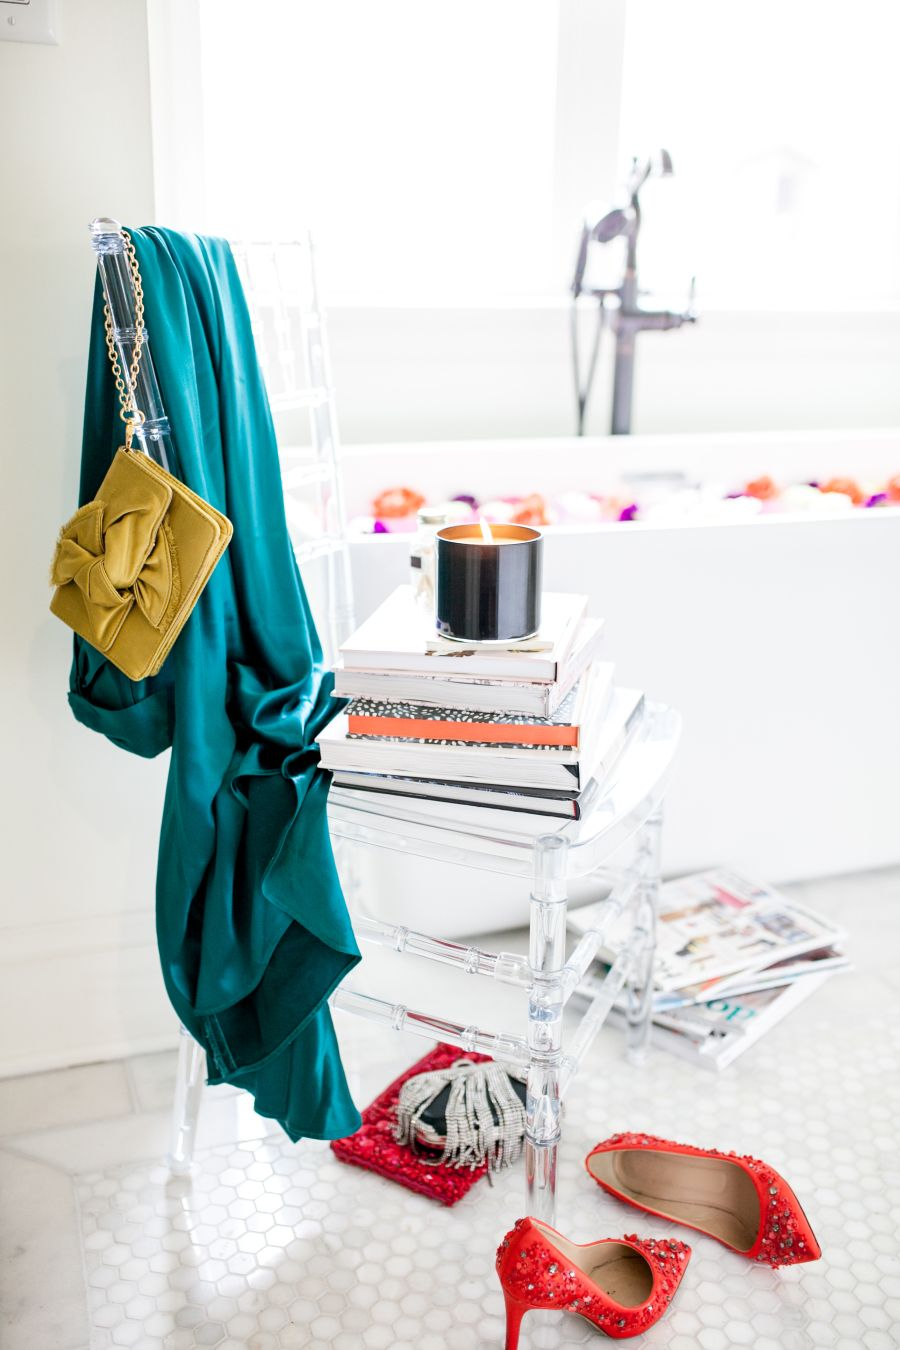 Bathroom Design Your Own 5 ways to make your bathroom design your own! photography